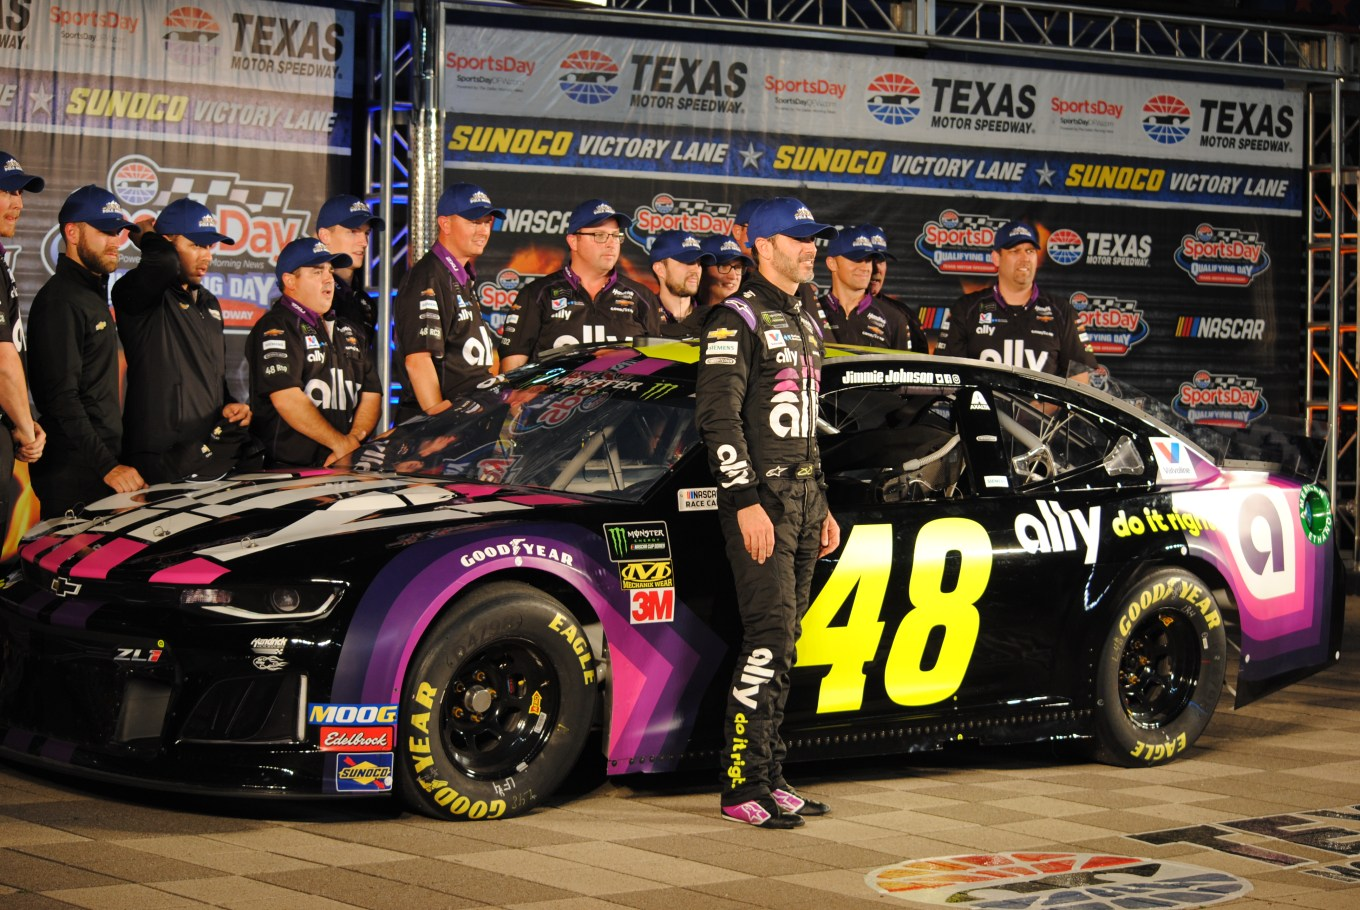 Jimmie Johnson 48 Texas Motor Speedway 2019 pole